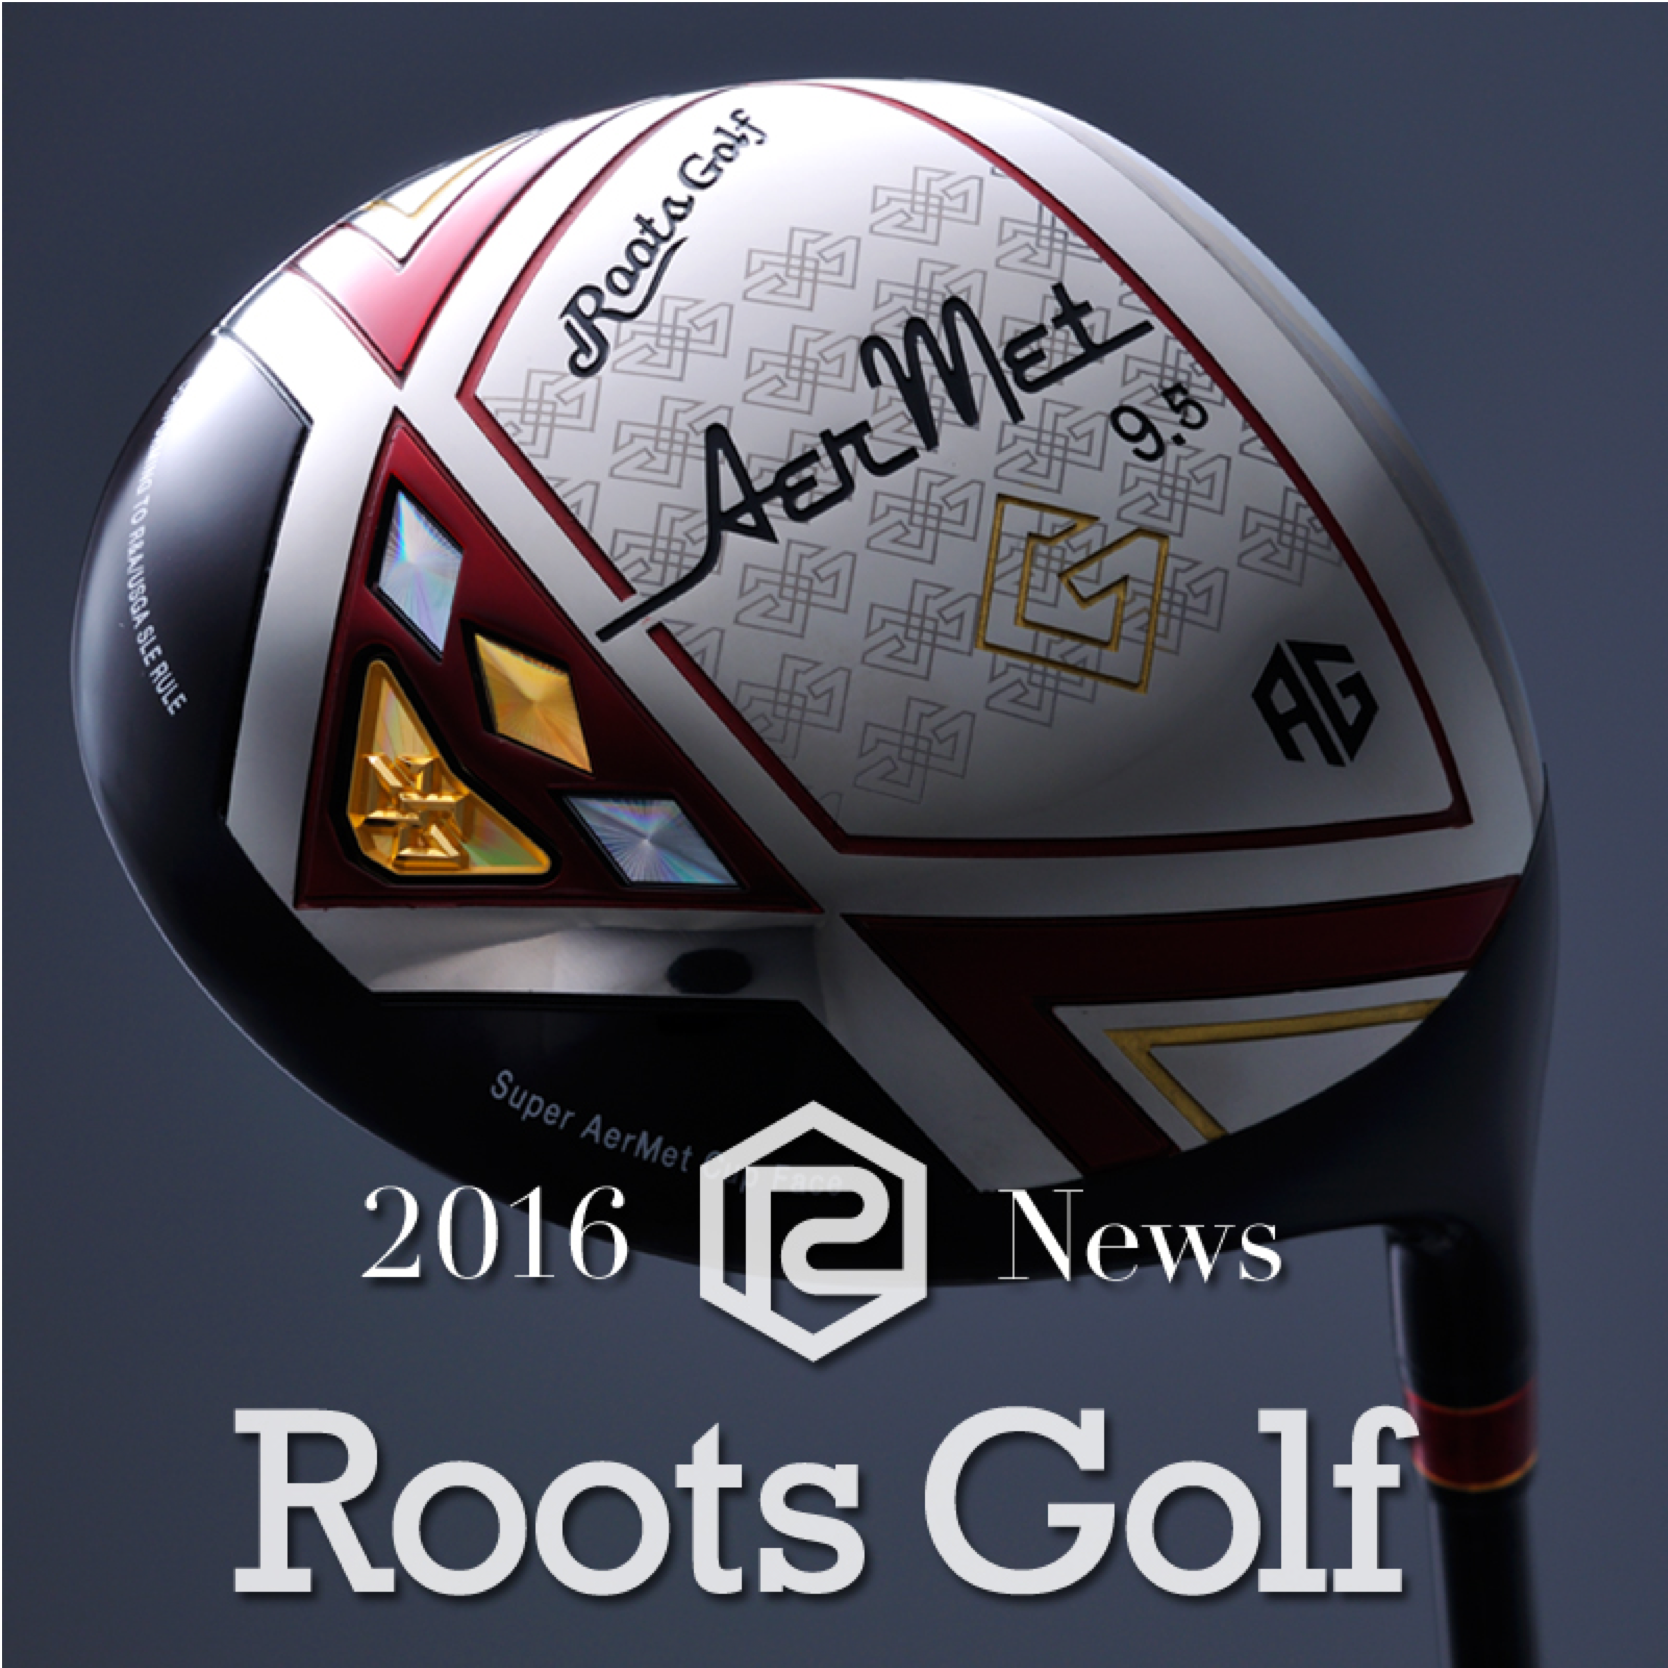 Roots Golf Story 動画制作